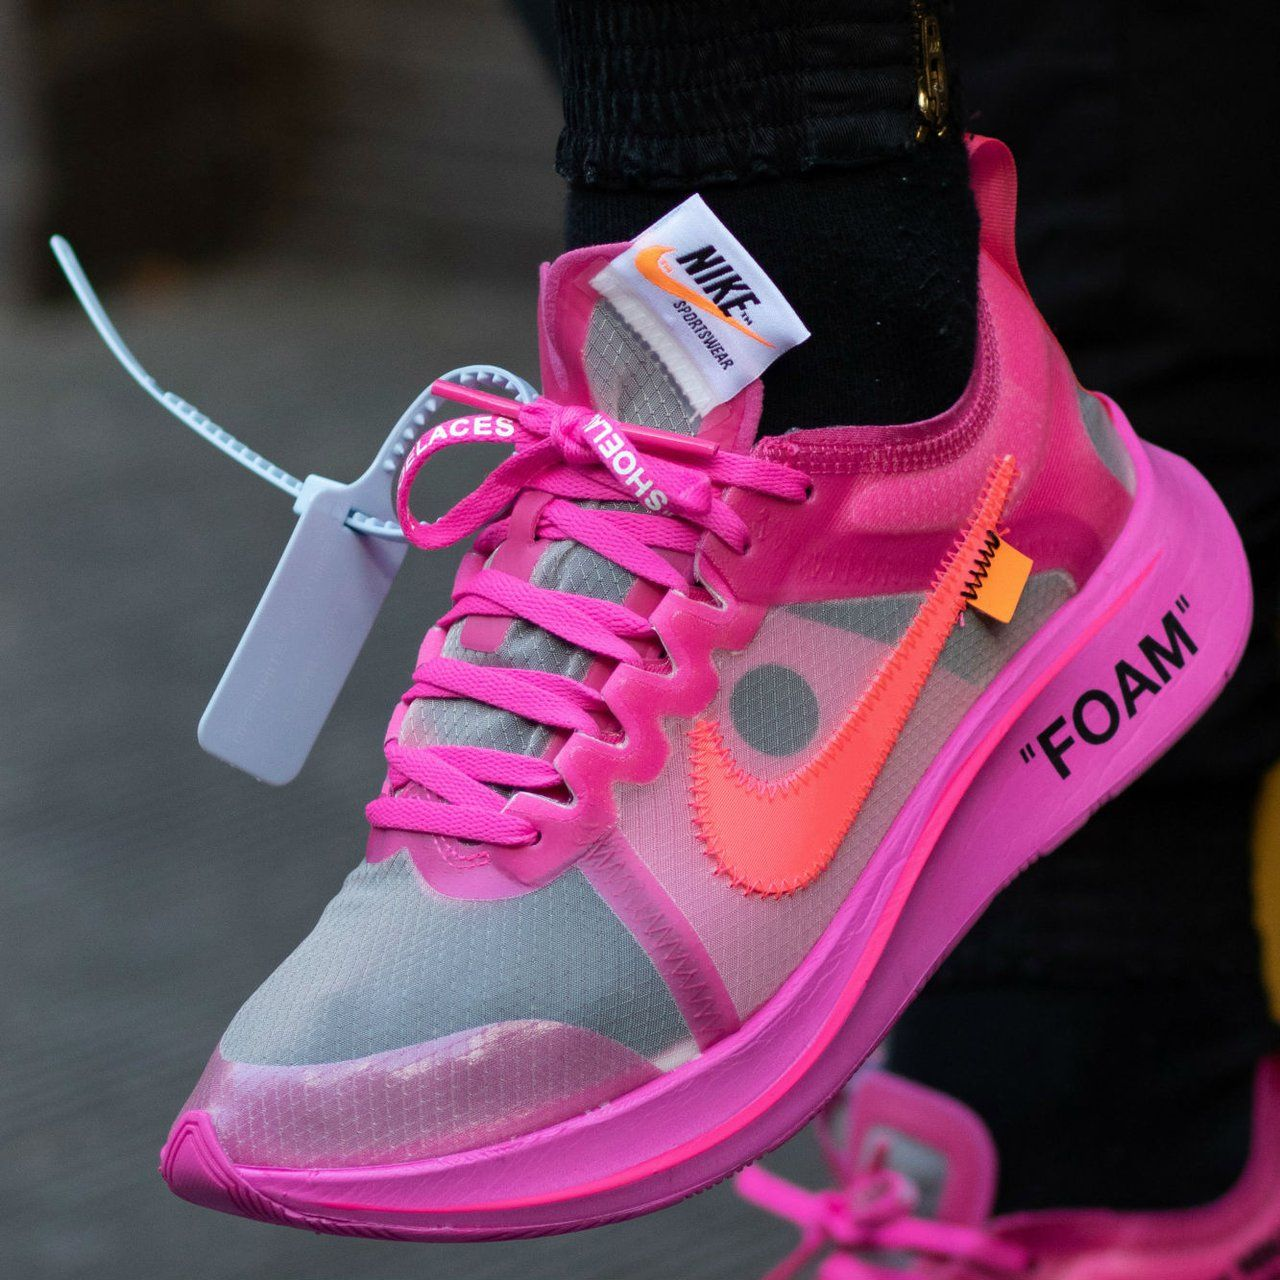 Two New Off White™ x Nike Zoom Fly SP Colorways Could Drop